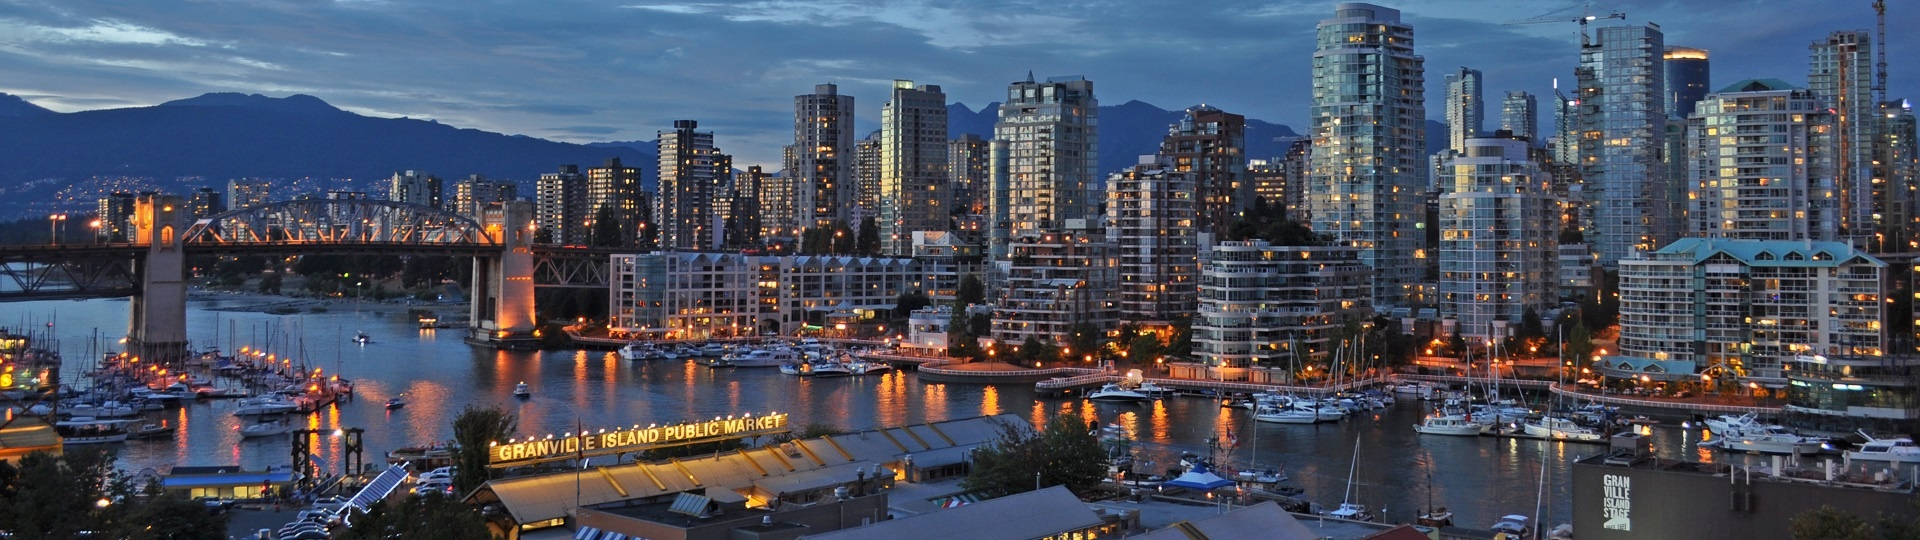 Vancouver_Harshil_Shah_Flickr_1920.jpg